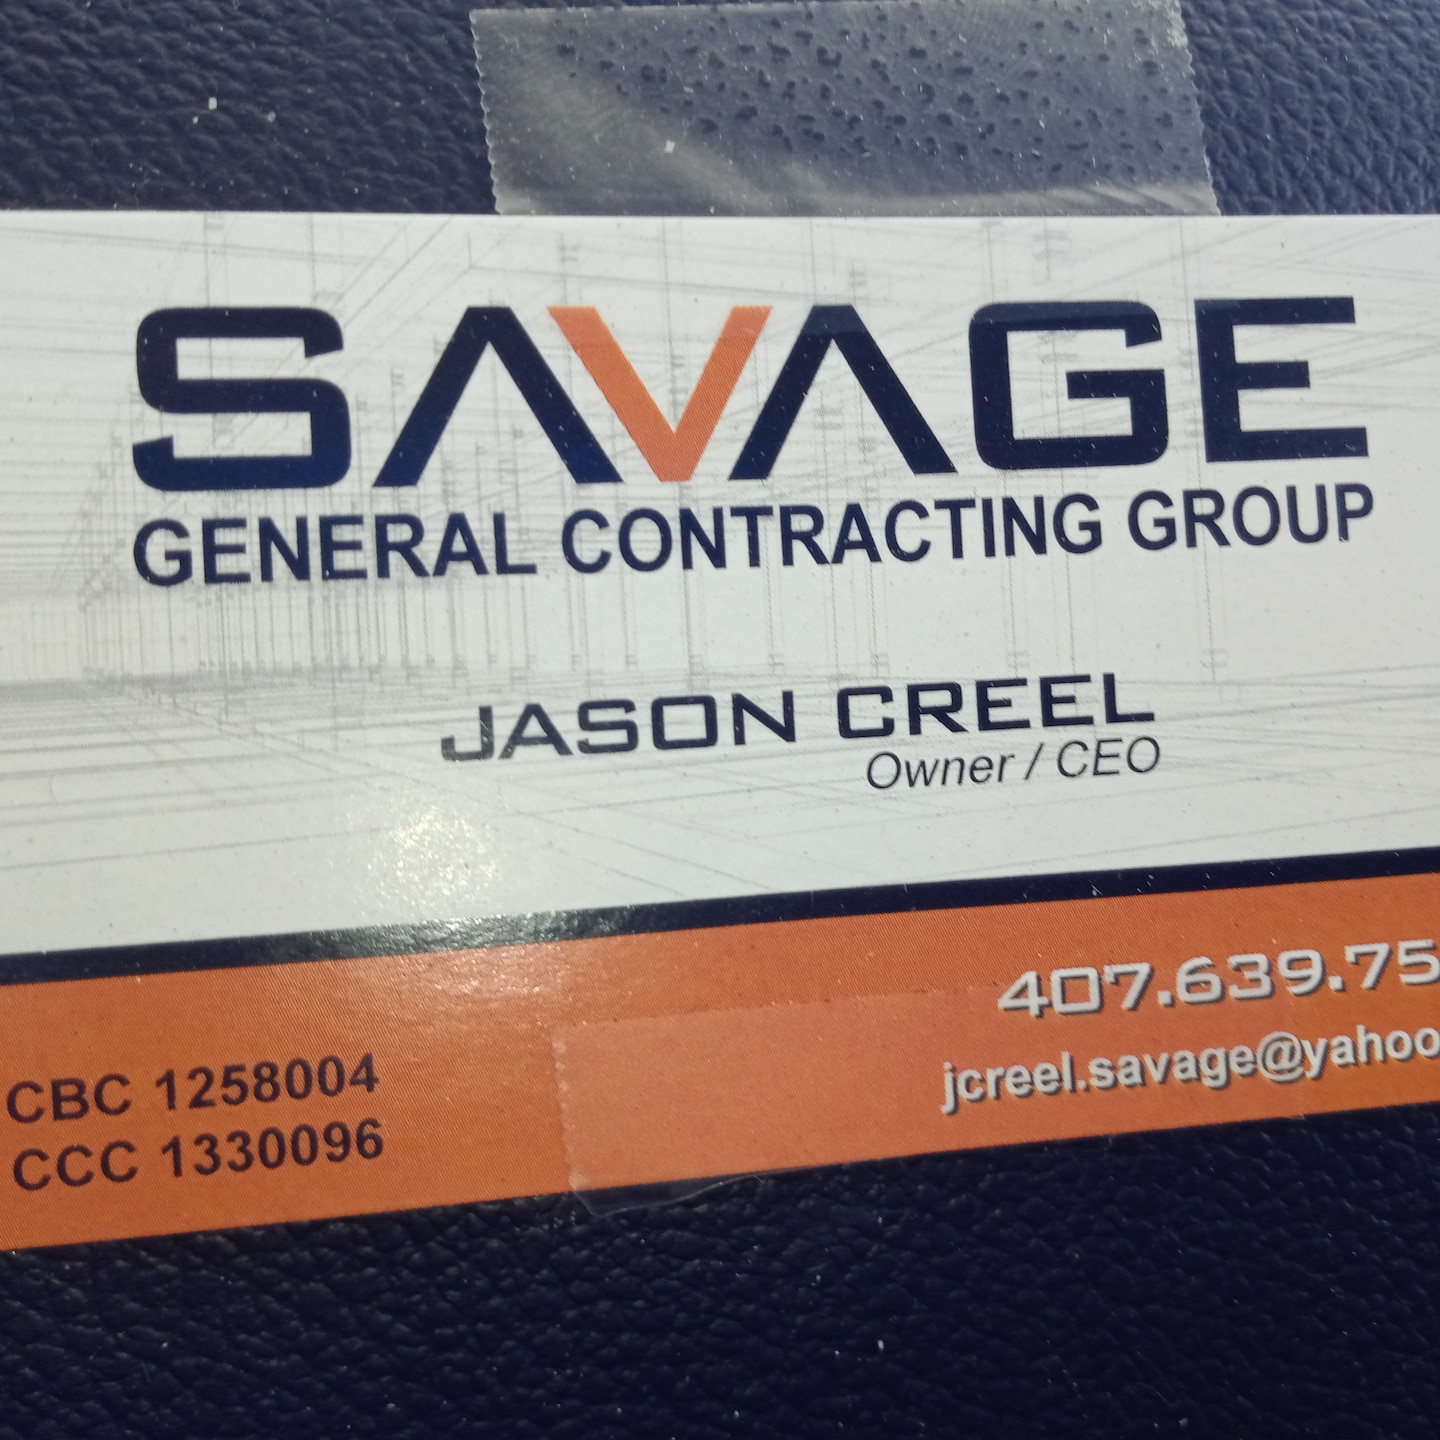 Savage General Contracting Group logo